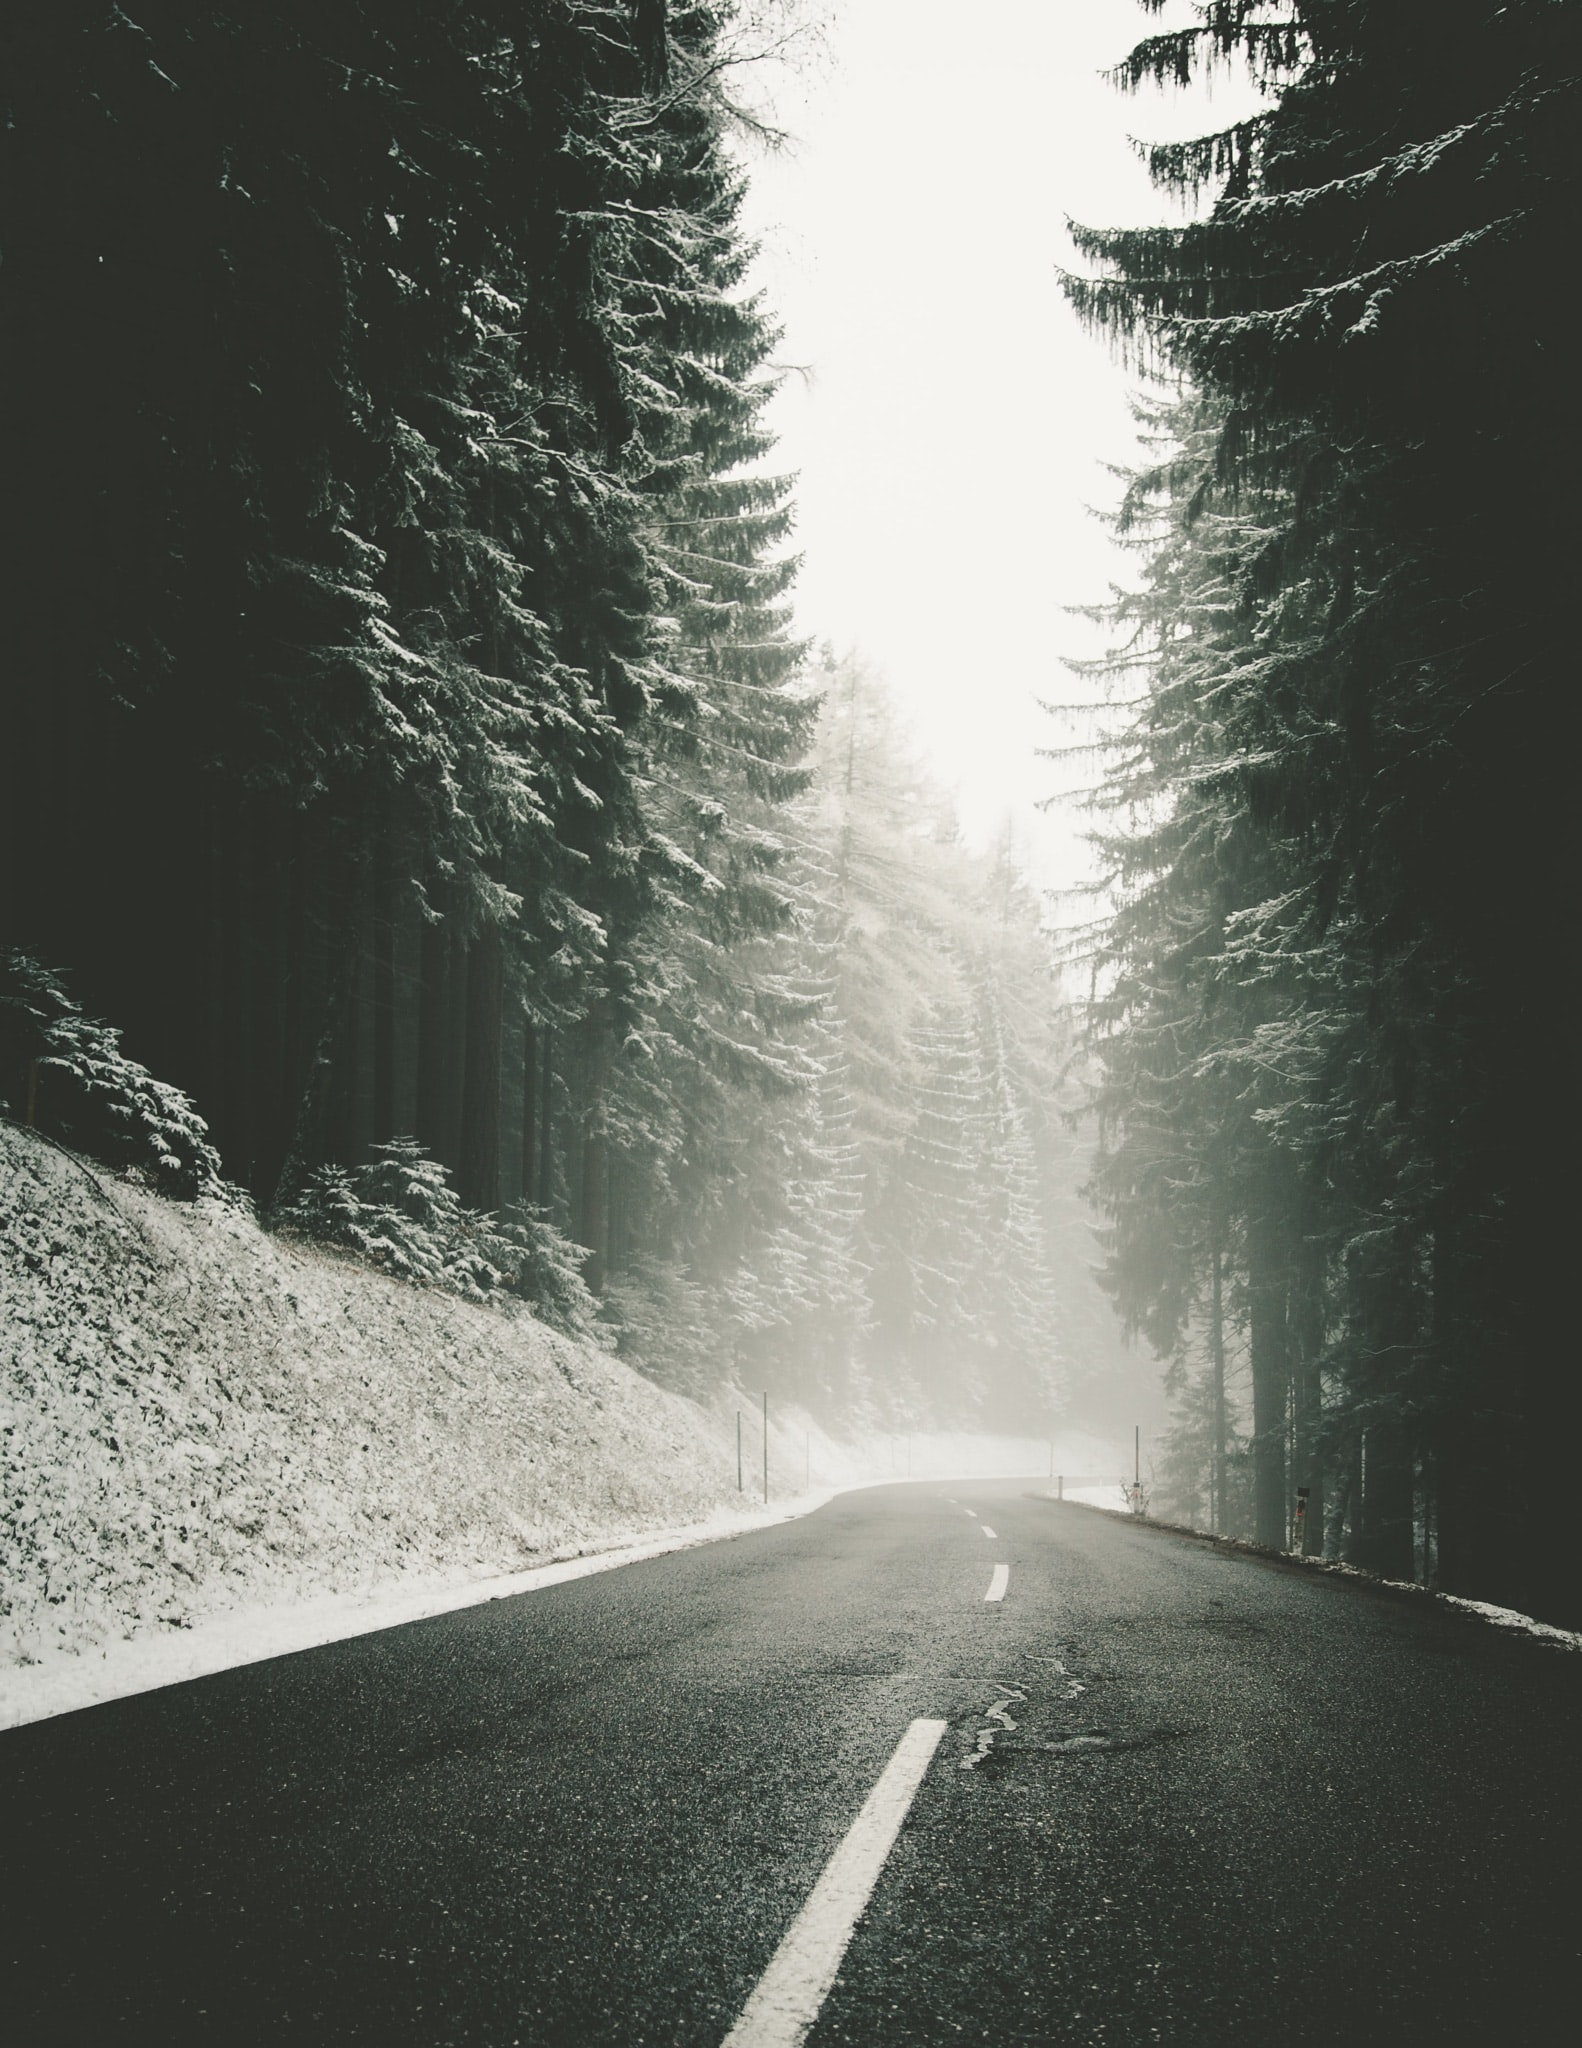 A blacktop road winding through a snowy evergreen forest